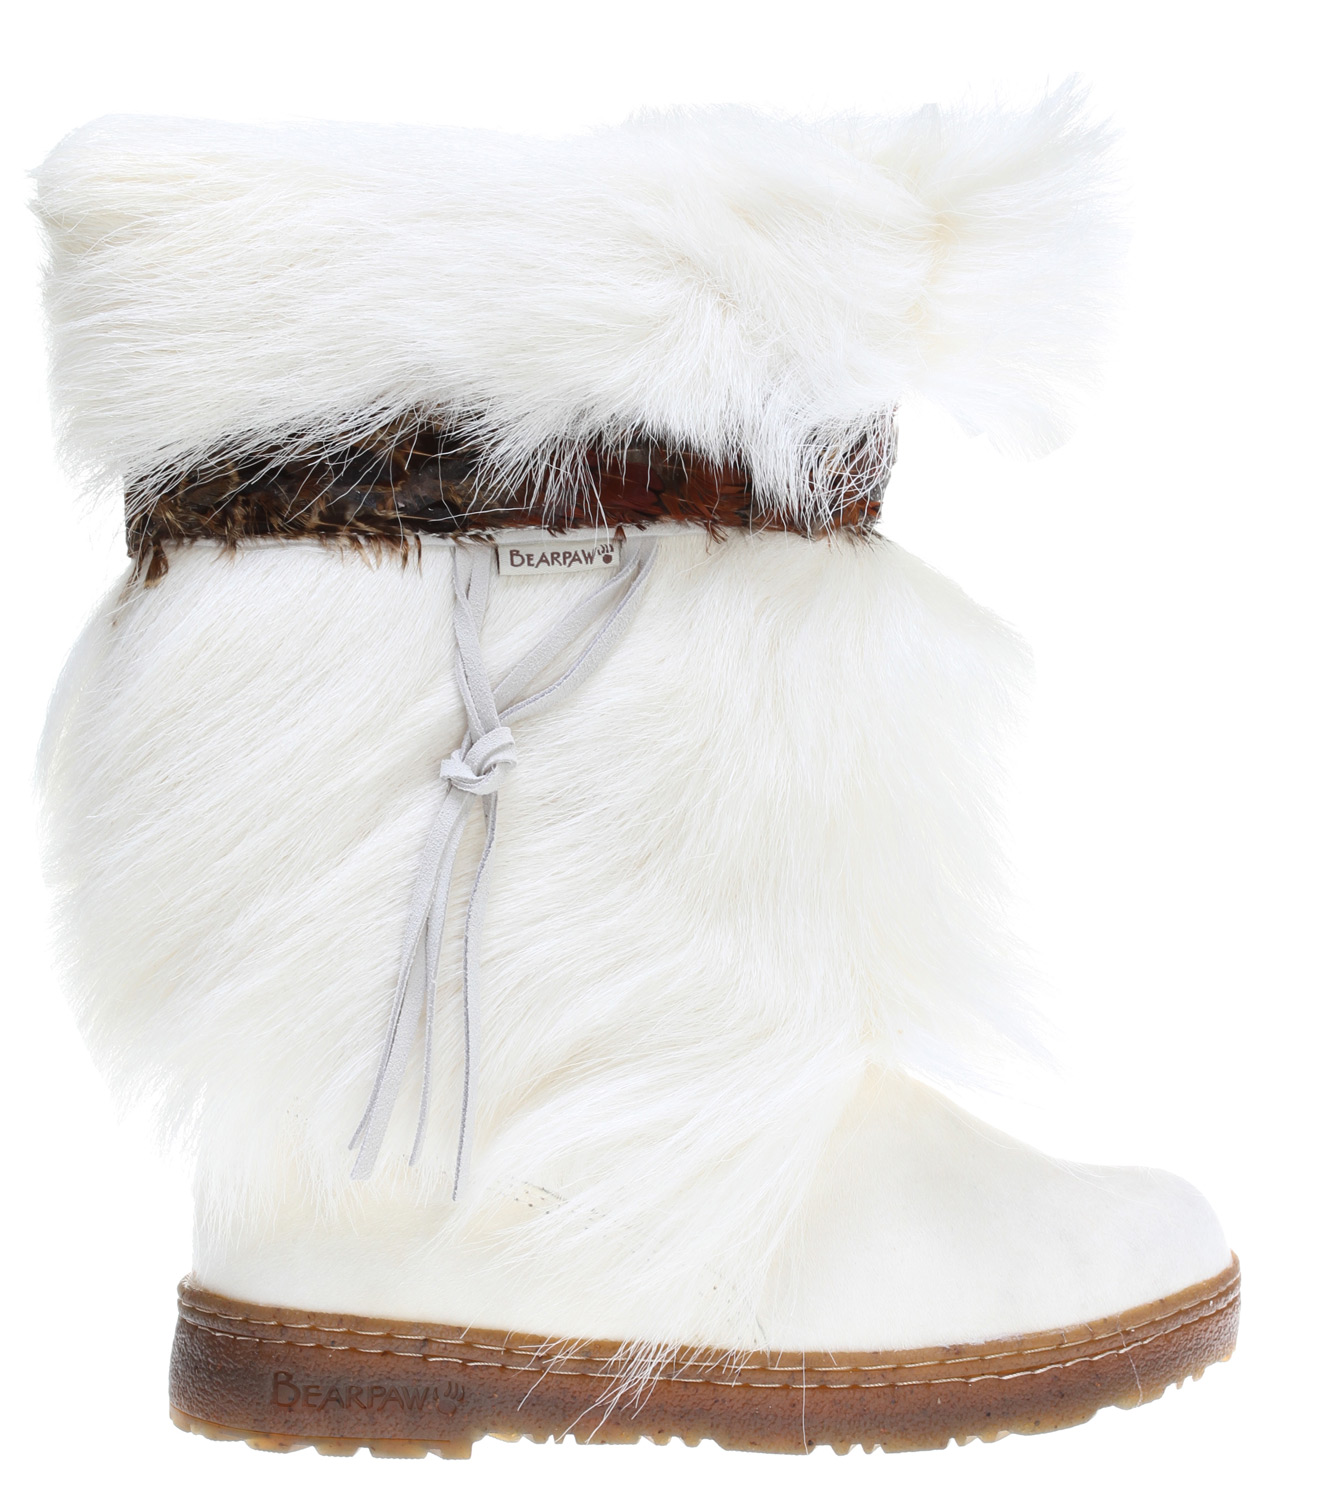 "The absolutely perfect boot for those times you want to walk on the wild side with style, warmth, and comfort. The feather banded trim and suede ties add just the right touch of fashion that will complete any outfit. Key Features of the Bearpaw Kola Boots: 11"" tall Cow hair vamp Goat fur with feather banded trim and suede ties Wool blend lining Sheepskin footbed Woven heel logo Semi clear rubber with cork cupsole Water shedding tread design and stitched detail Tip: Order 1 size up, see size chart for details. - $139.99"